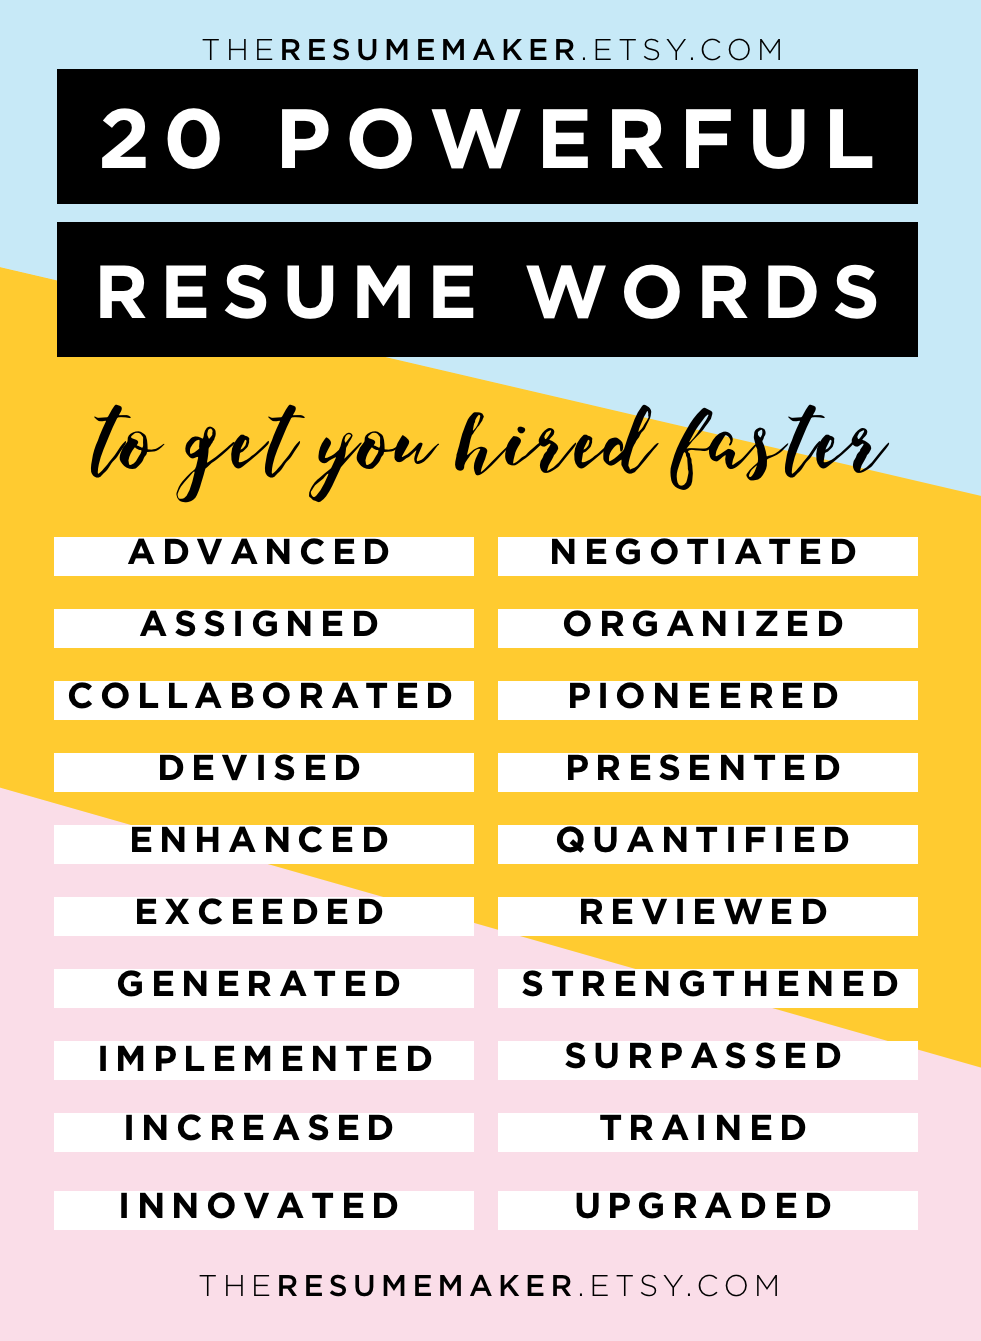 Resume Power Words, Free Resume Tips, Resume Template, Resume Words, Action  Words, Resume Tips College, Resume Help, Resume Advice #resumepowerwords ...